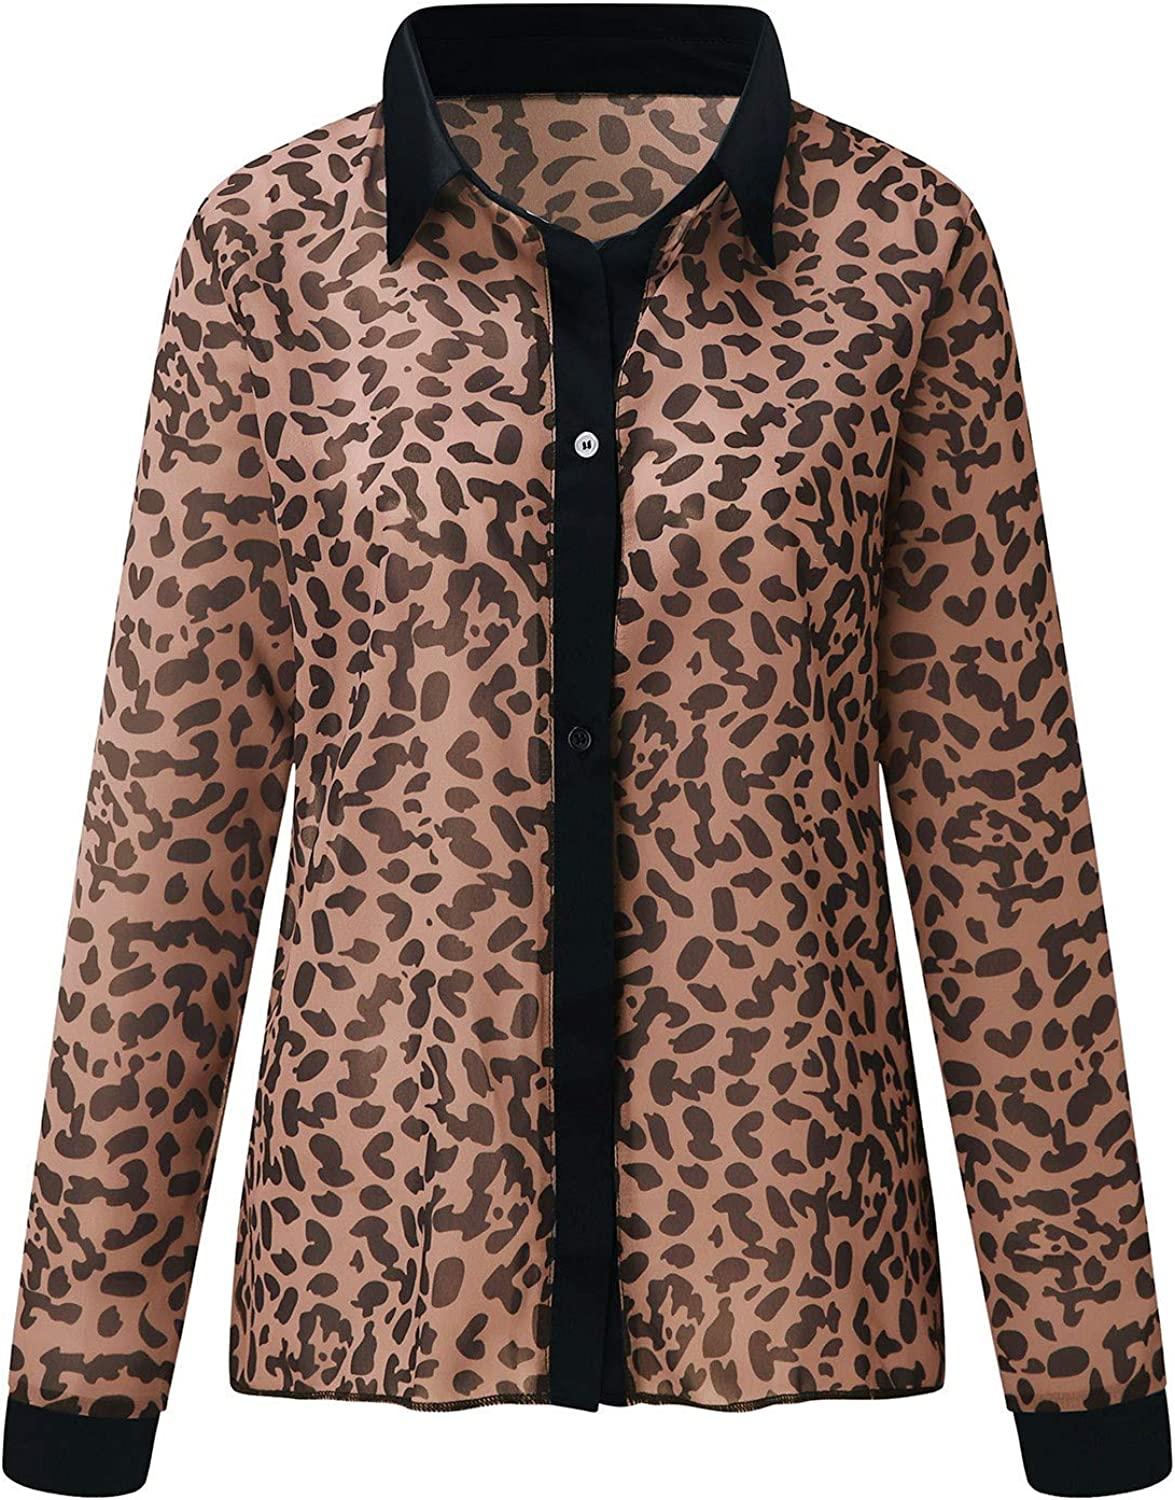 A2A Leopard Tops for Women New Embroidered Floral Sheer Mesh Shirt Women Sexy Bodydoll Lingerie Tops Nightdress